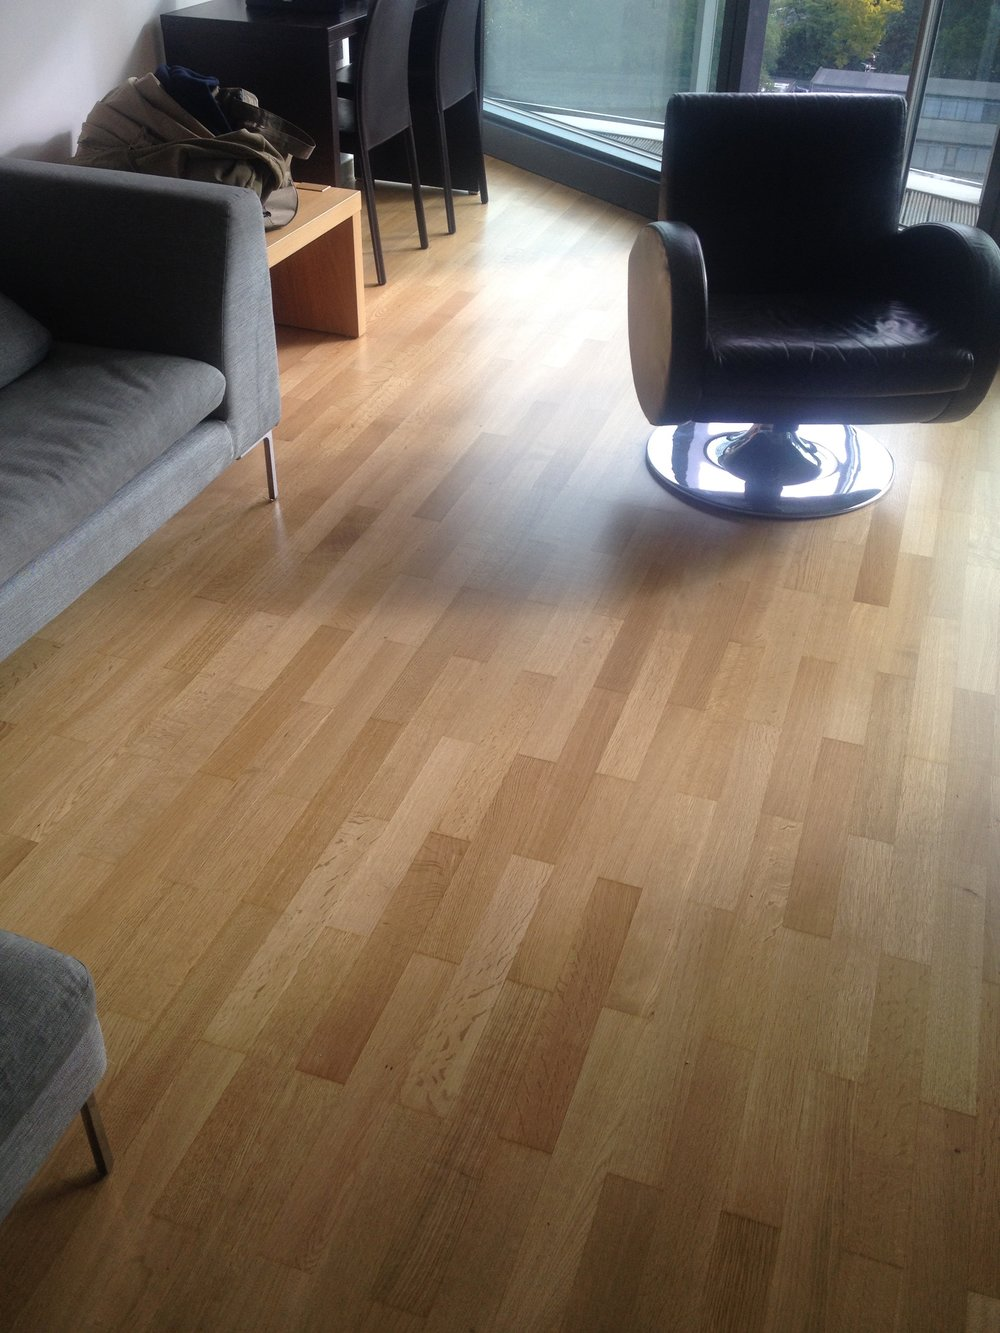 Refinished oak engineered floor.